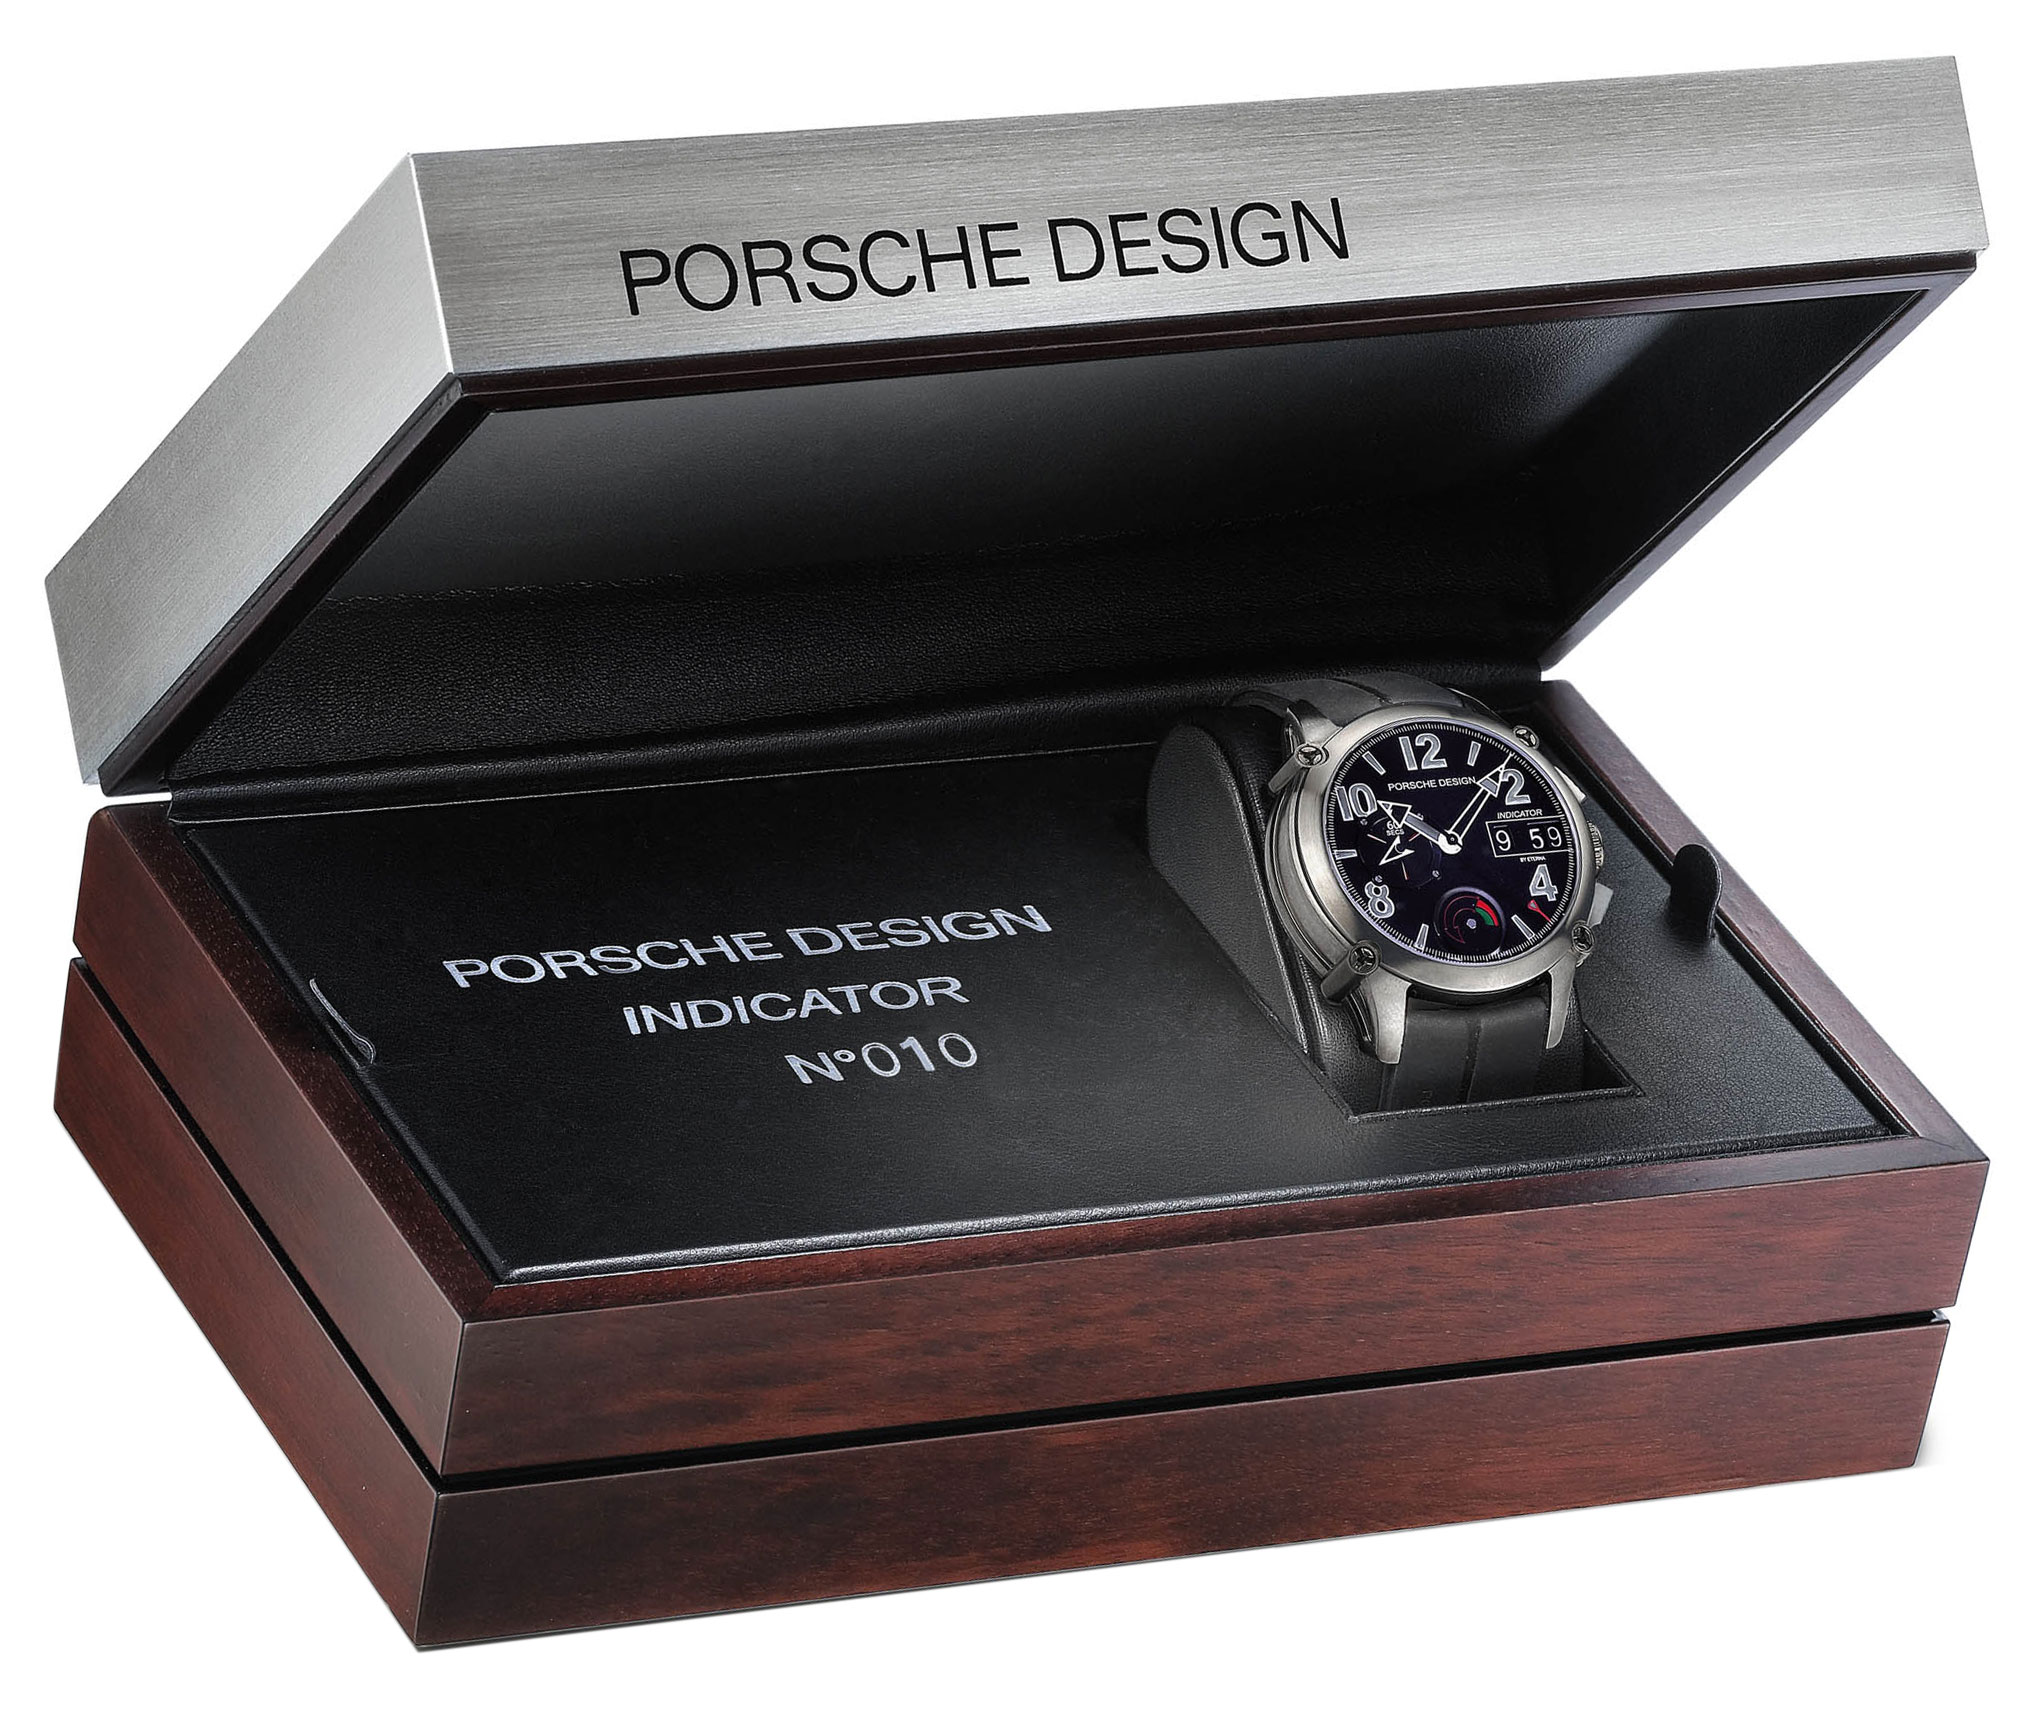 Porsche Design Indicator Mens Watch Model 691010401149